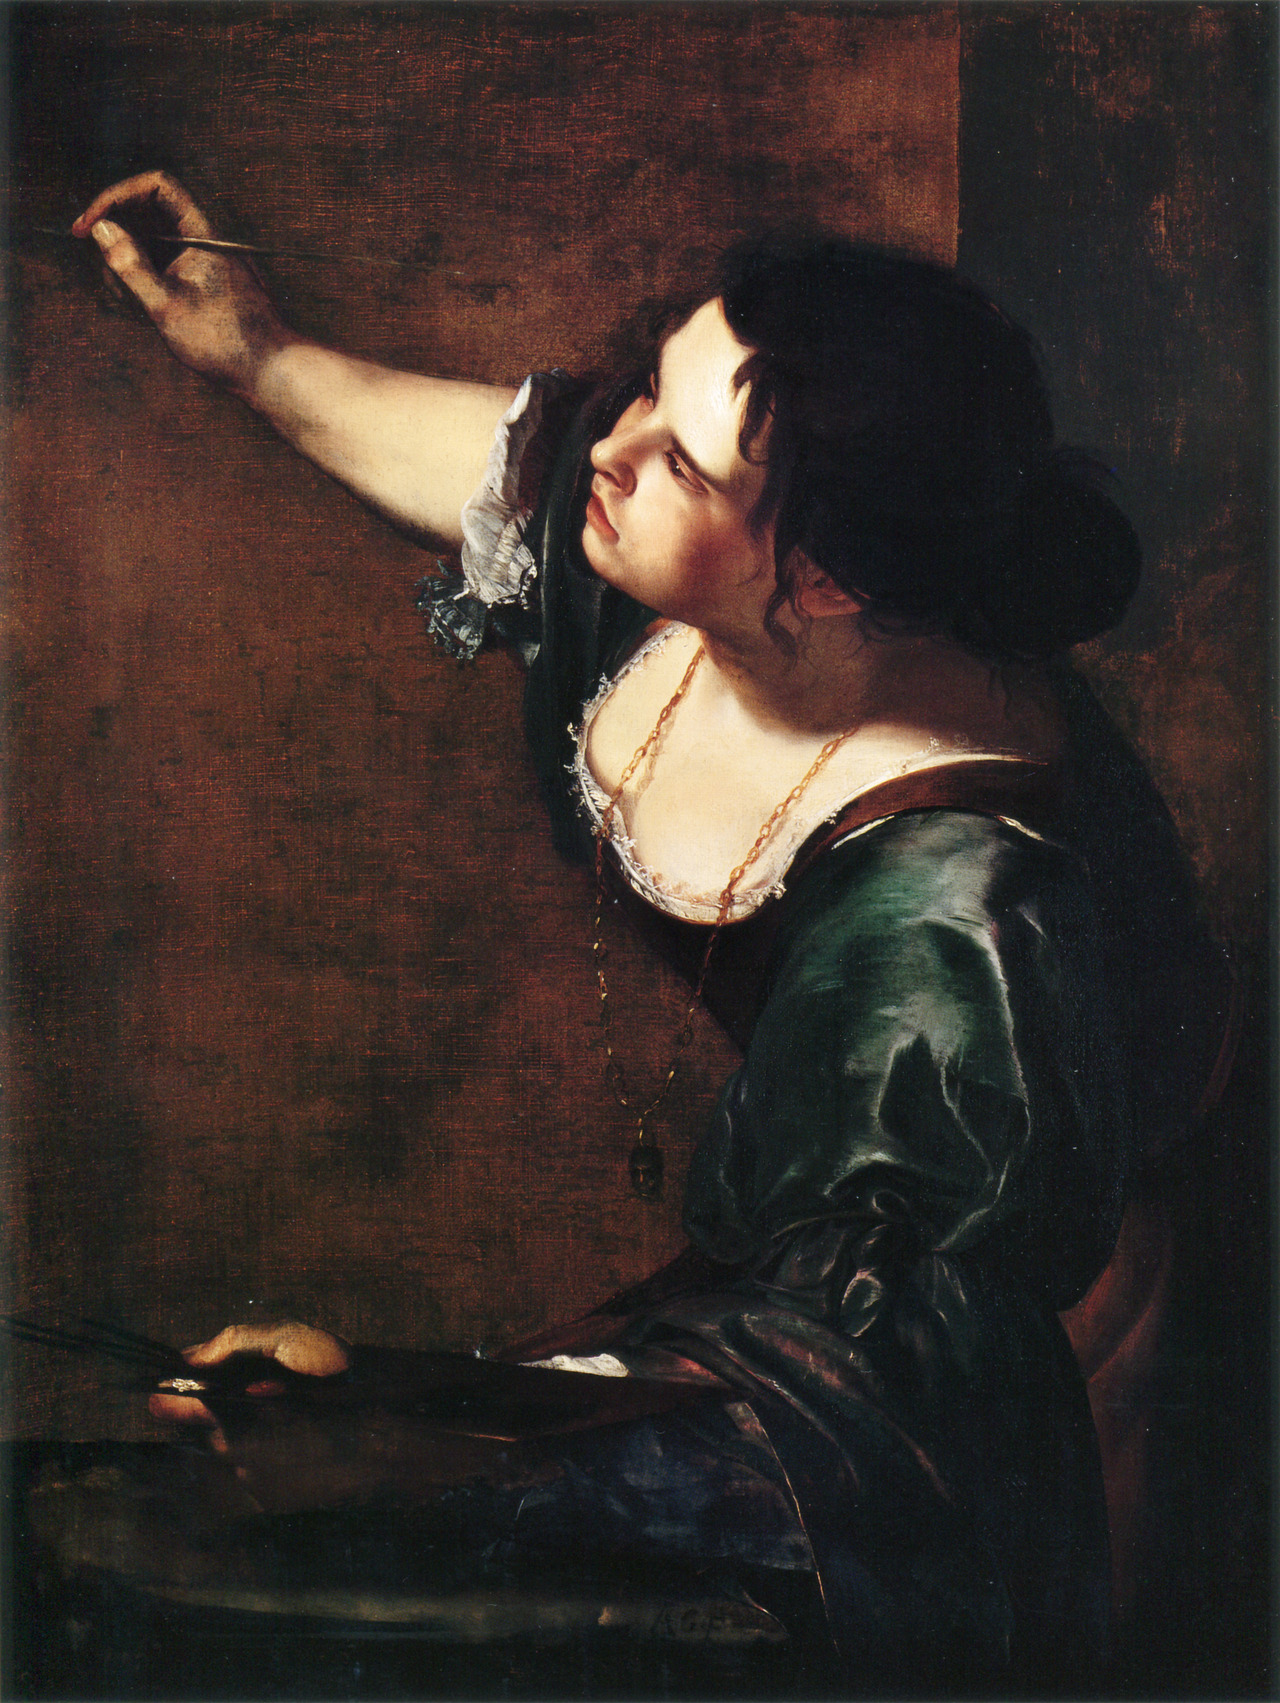 the life and work of artemisia gentileschi Artemisia was a very well-known, working artist with a stellar reputation for over 40 years but her paintings and details of her life are still being discovered today she didn't sign all of her work, and for a long time, a lot of it was attributed to her father.